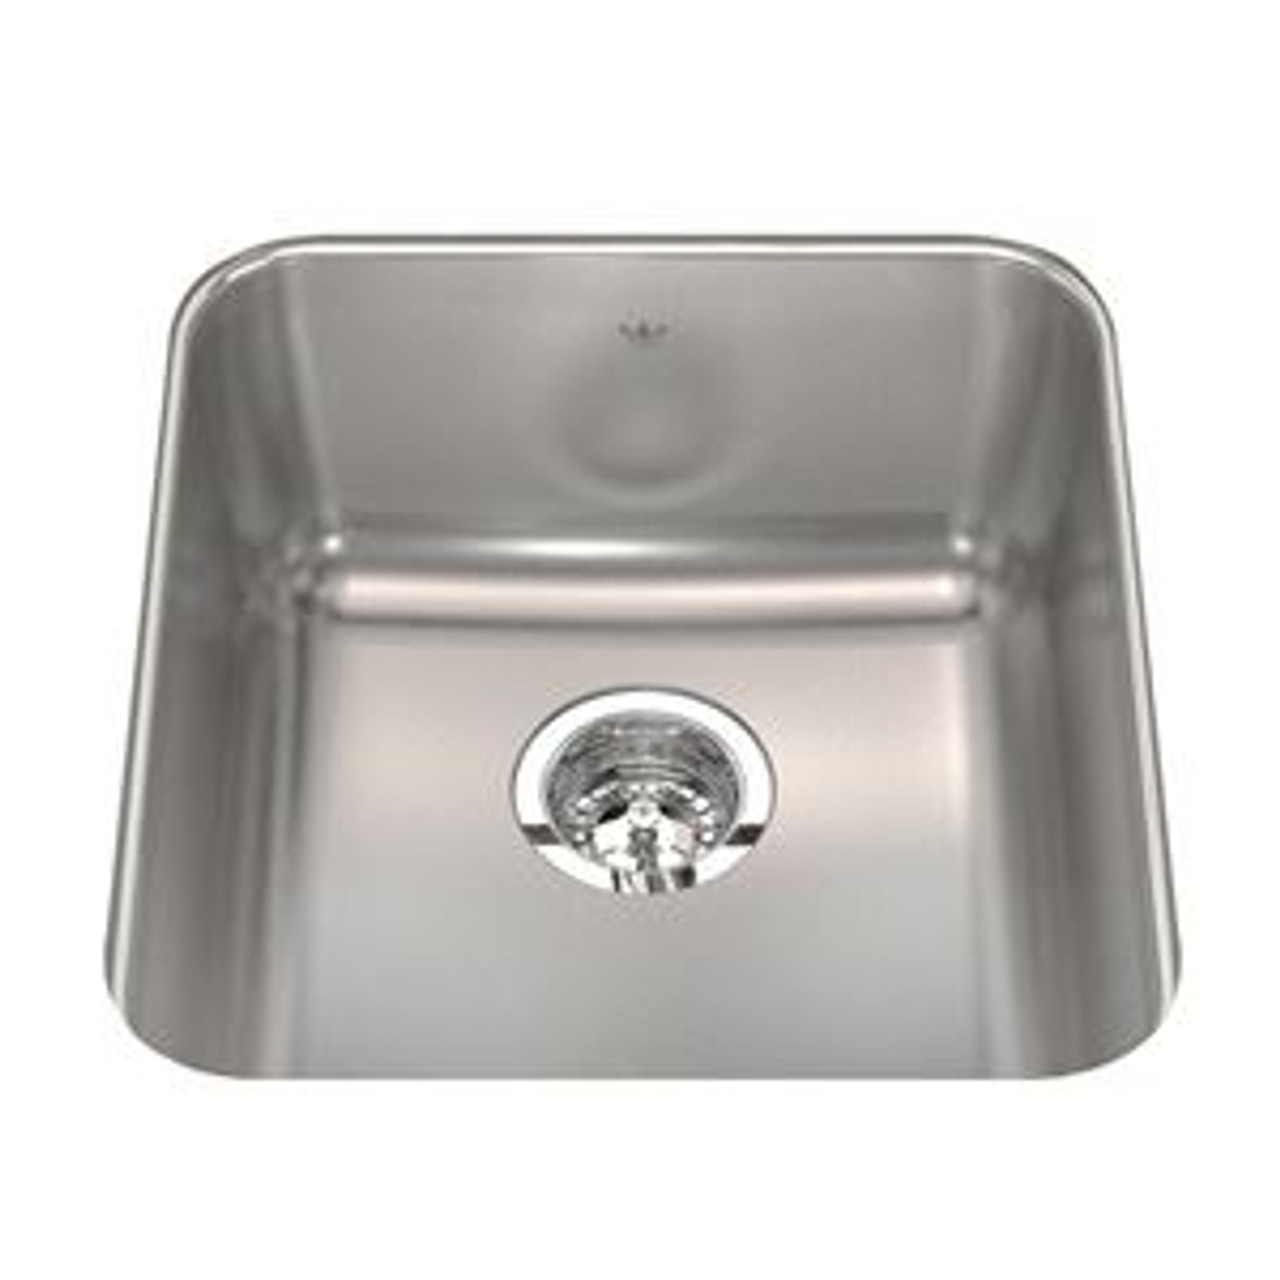 kindred qsua1917 8 17 single bowl stainless steel undermount bar prep sink in stainless steel